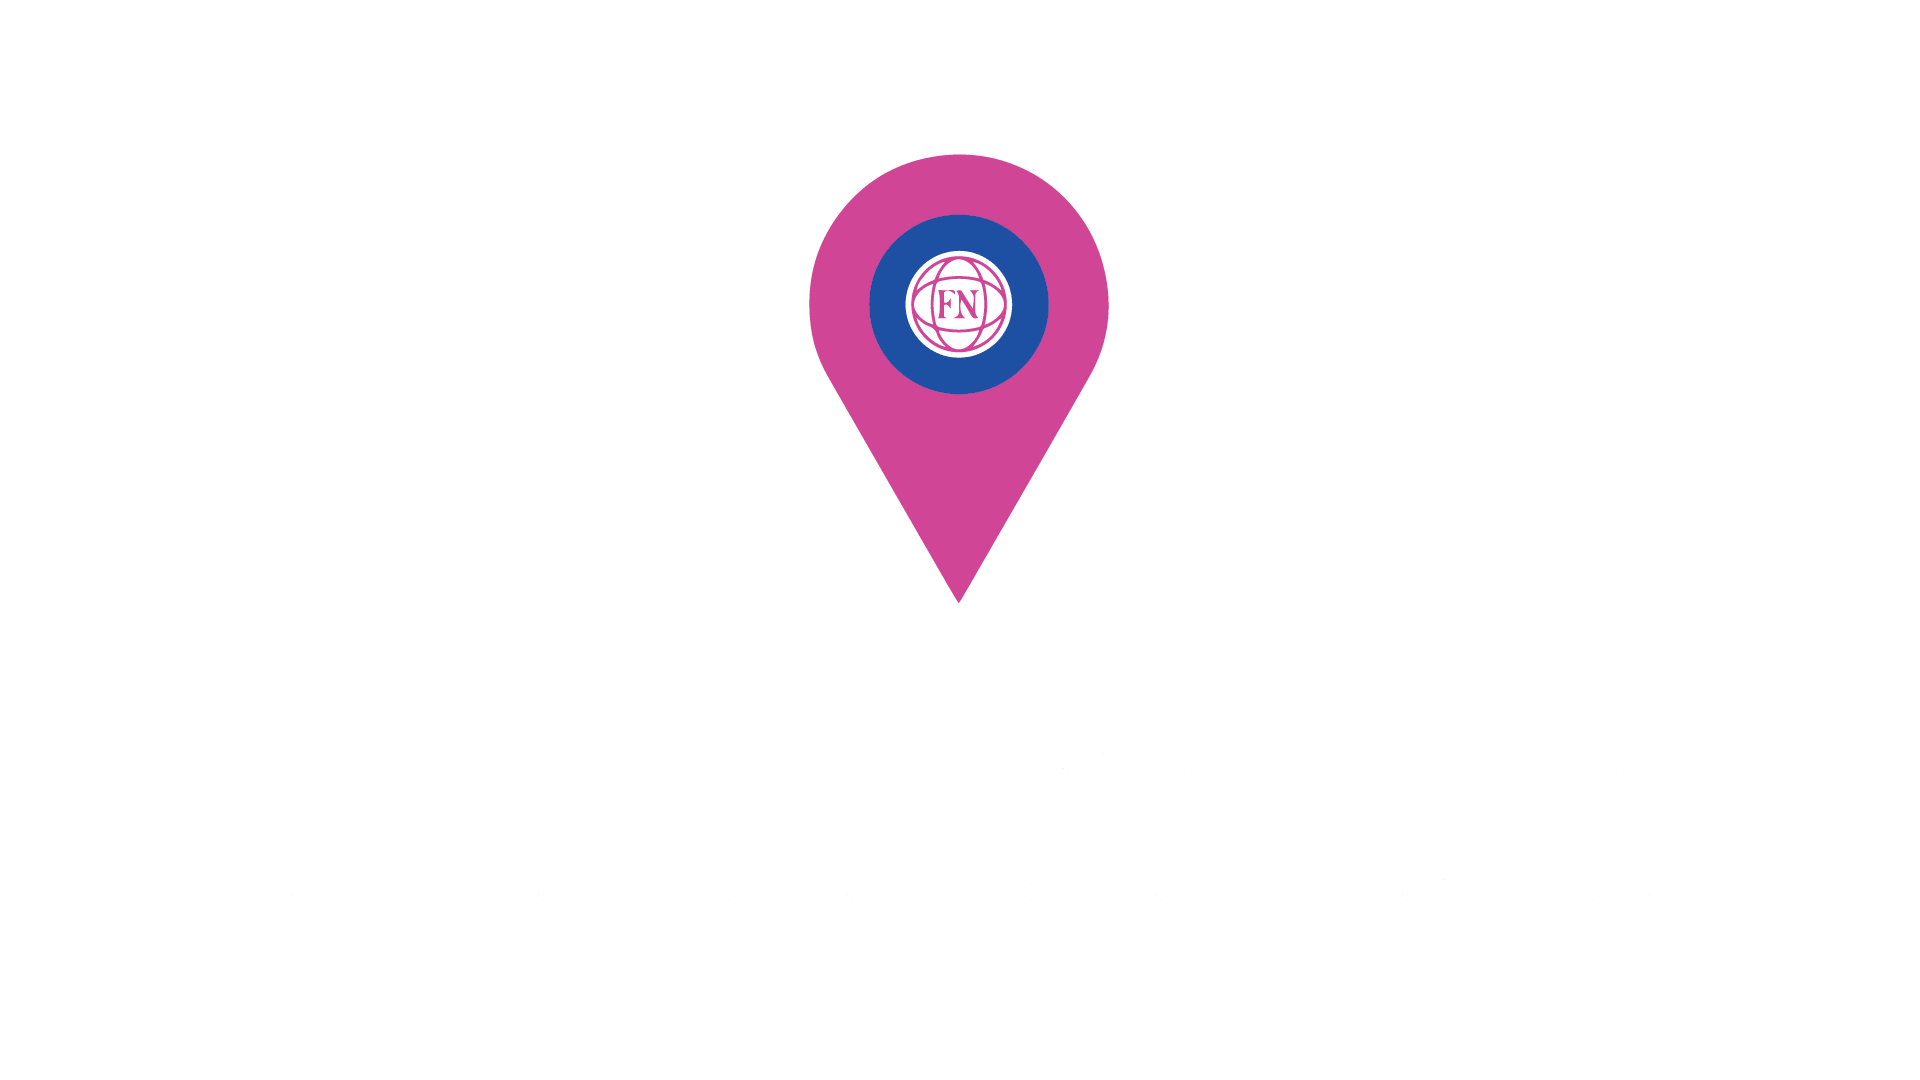 if you see something moving, try to interact with it